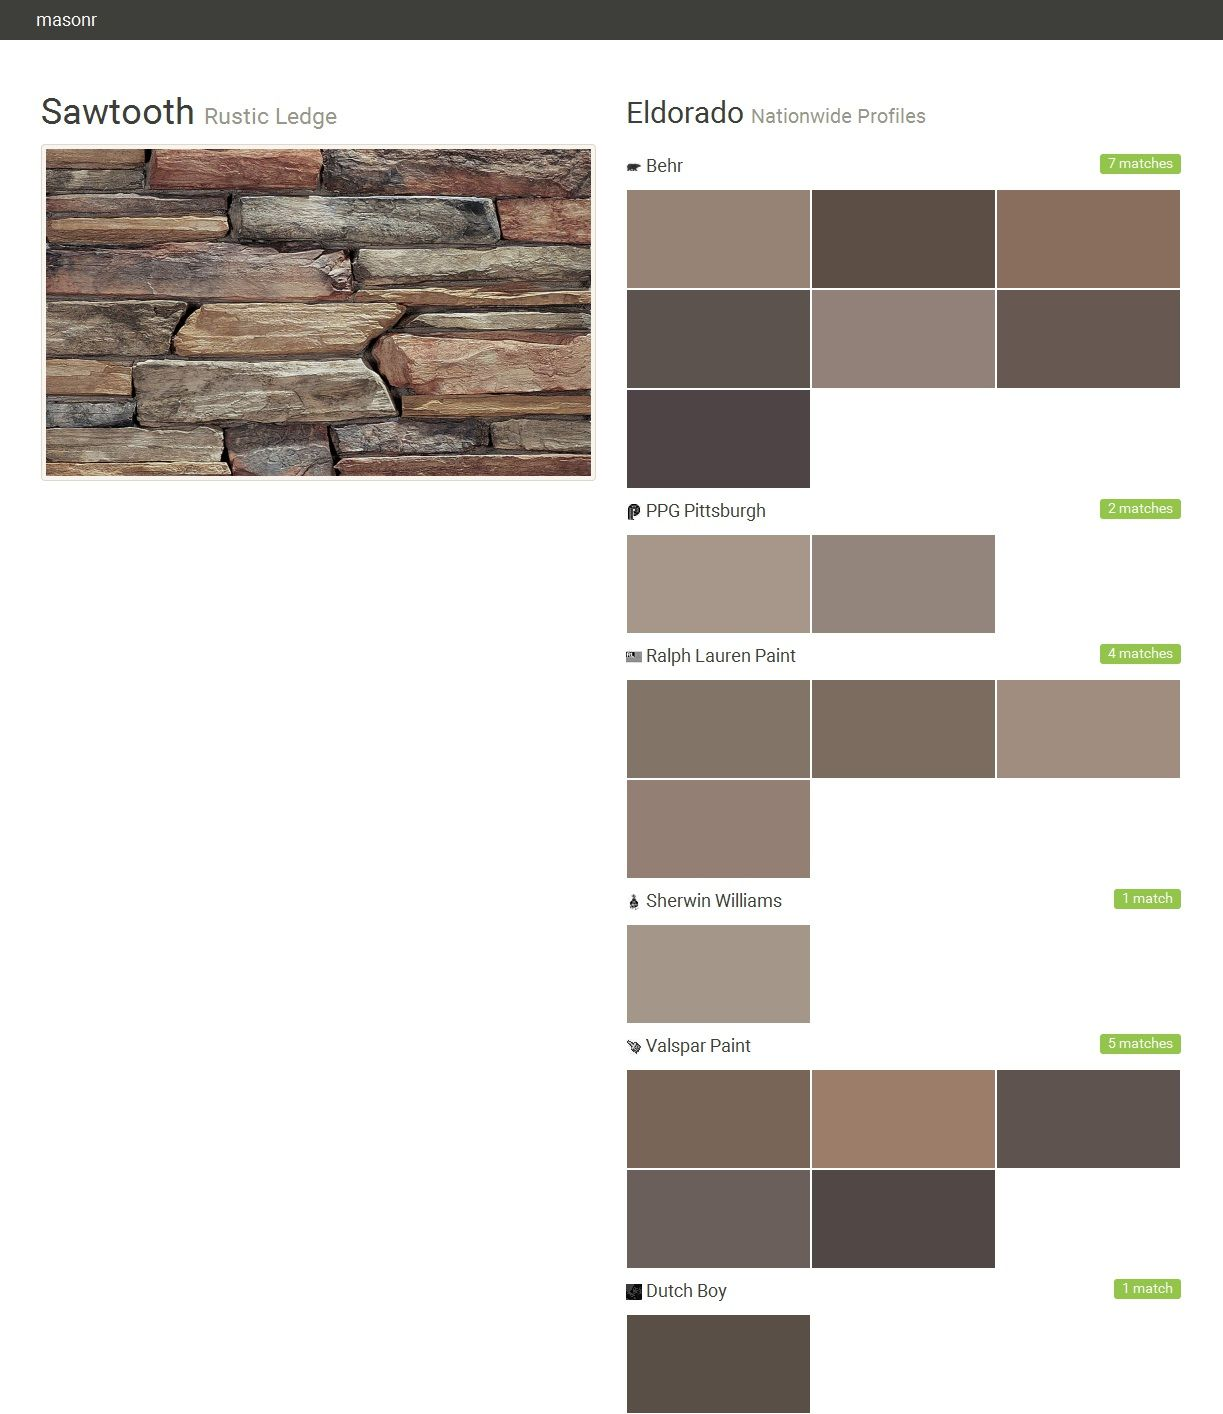 Sawtooth. Rustic Ledge. Nationwide Profiles. Eldorado. Behr. PPG Pittsburgh. Ralph Lauren Paint. Sherwin Williams. Valspar Paint. Dutch Boy.  Click the gray Visit button to see the matching paint names.